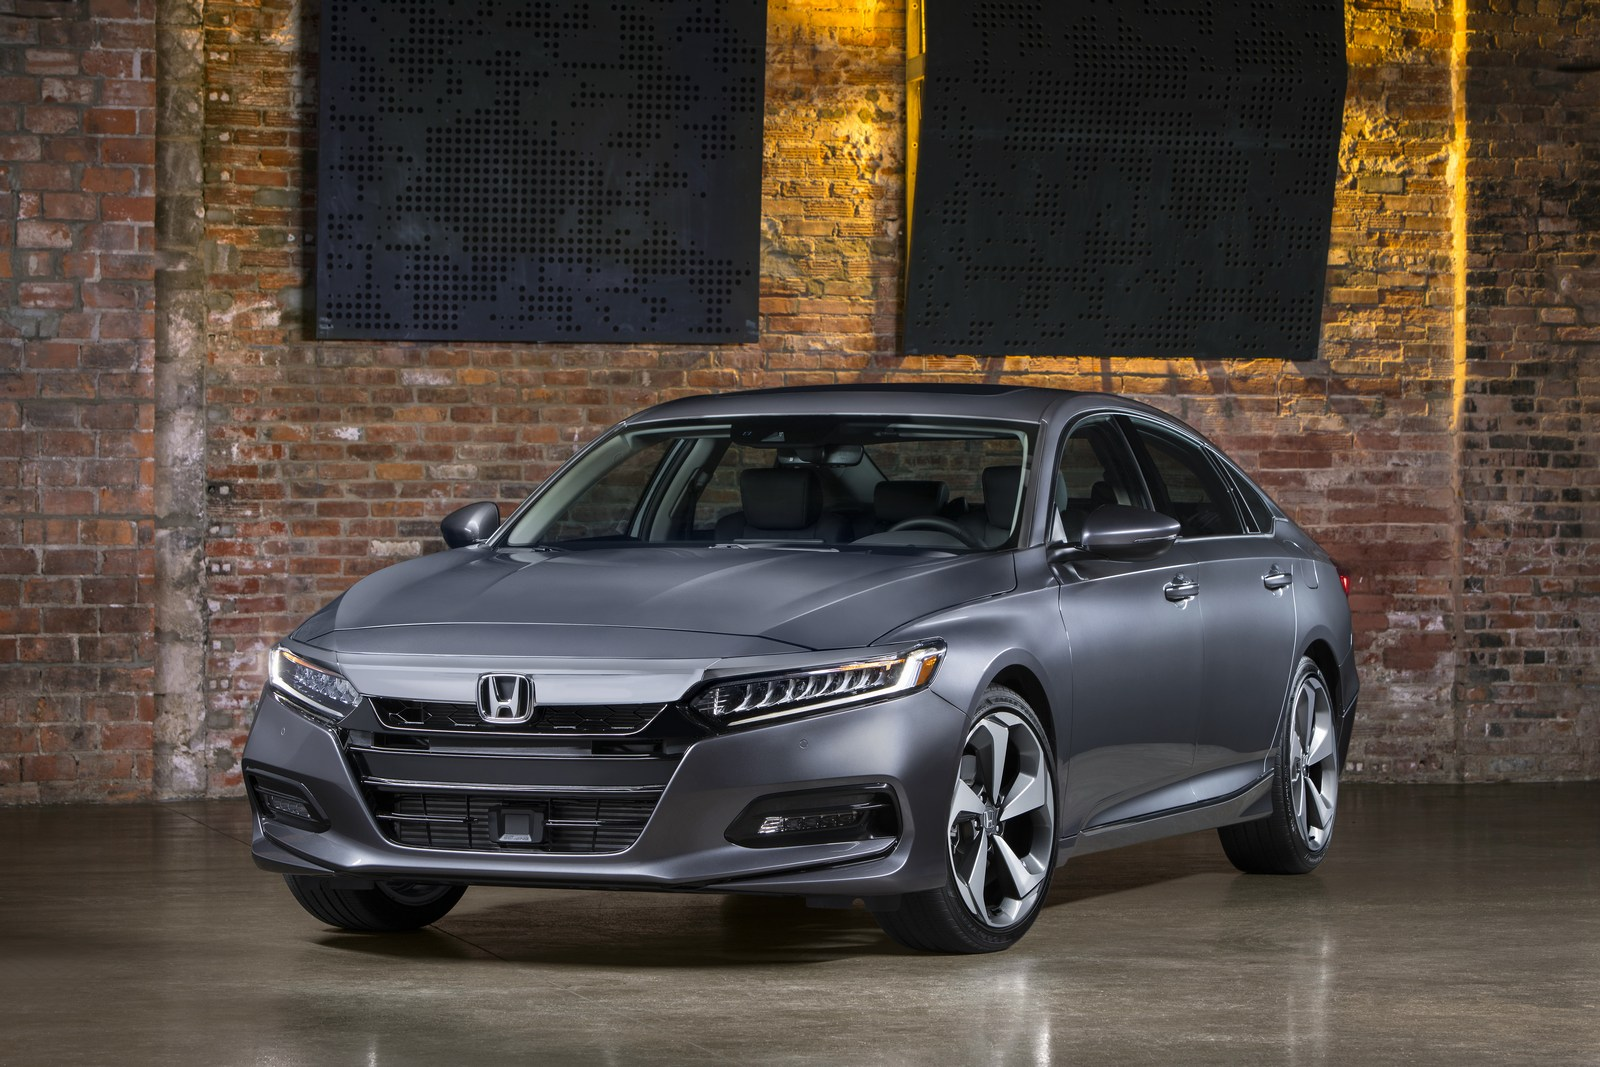 2018 Honda Accord Type R Gets Closer To Reality Thanks To ...